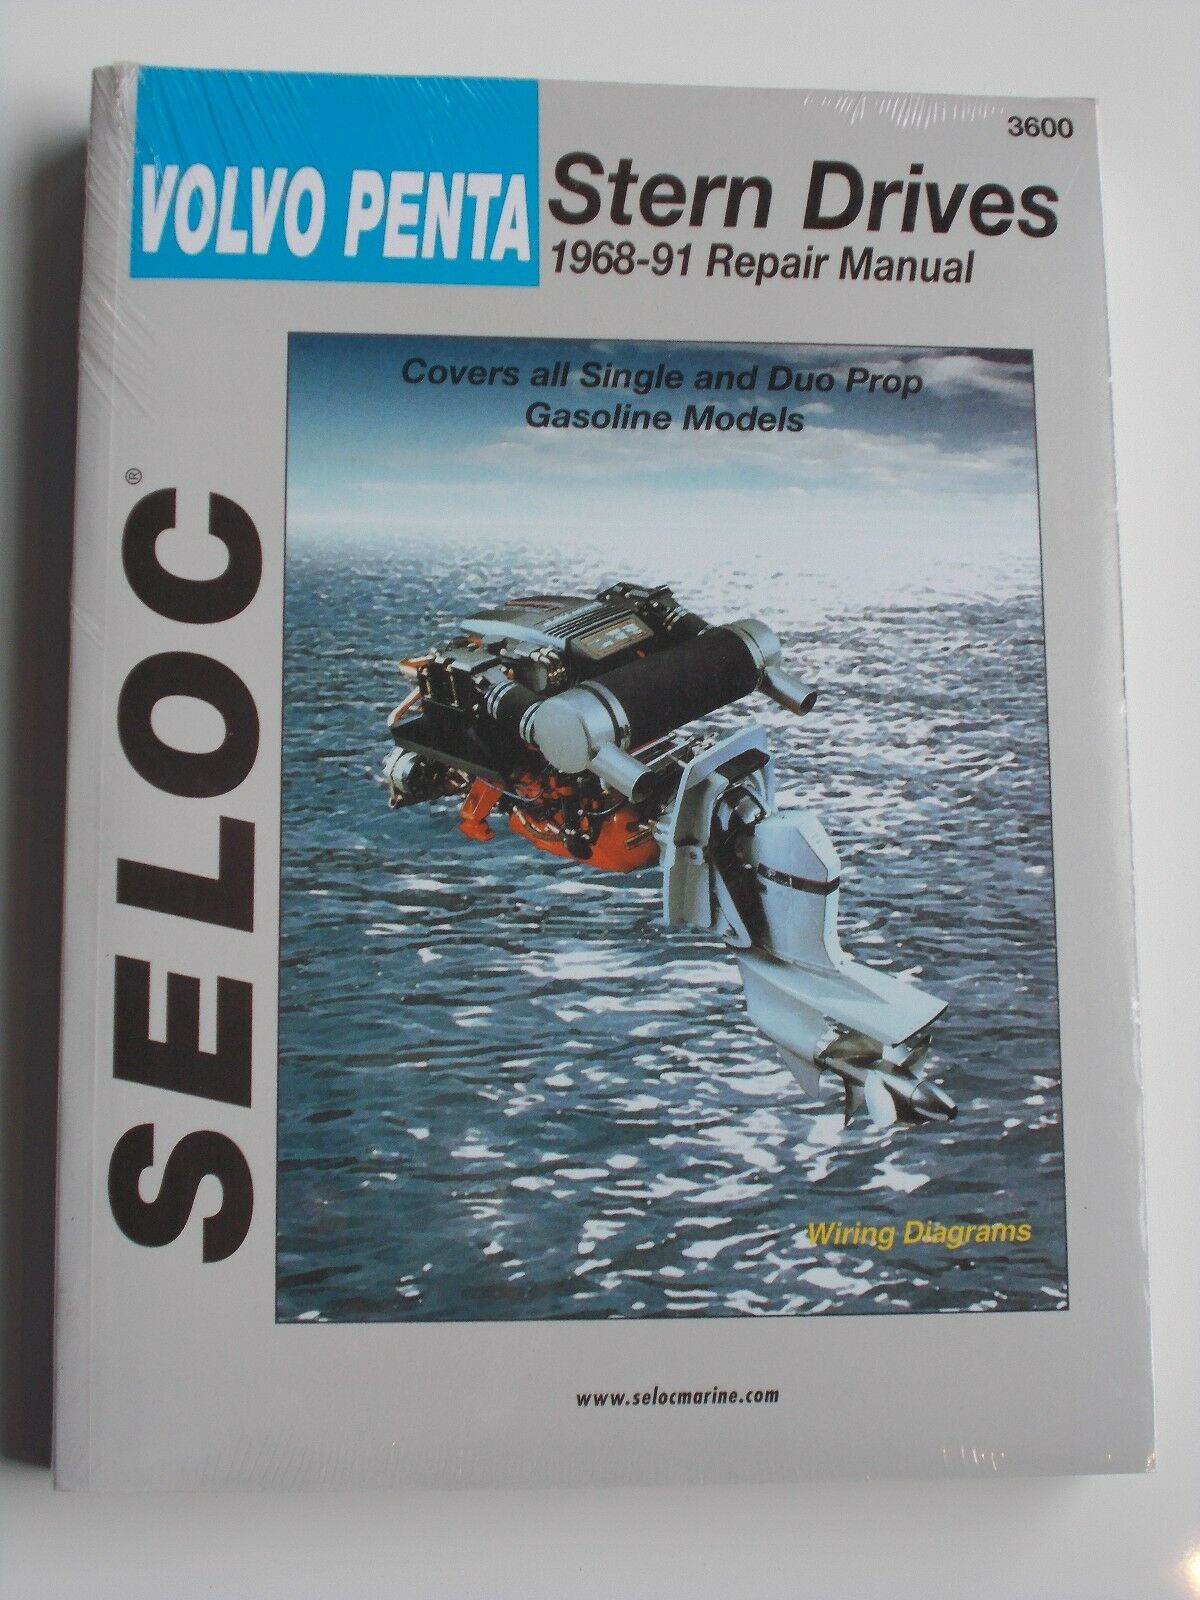 Volvo Penta Service Repair Manual 1968 To 1991 Sterndrive Seloc 3600 1984 Aq125a Engine Diagram 1 Of 1free Shipping